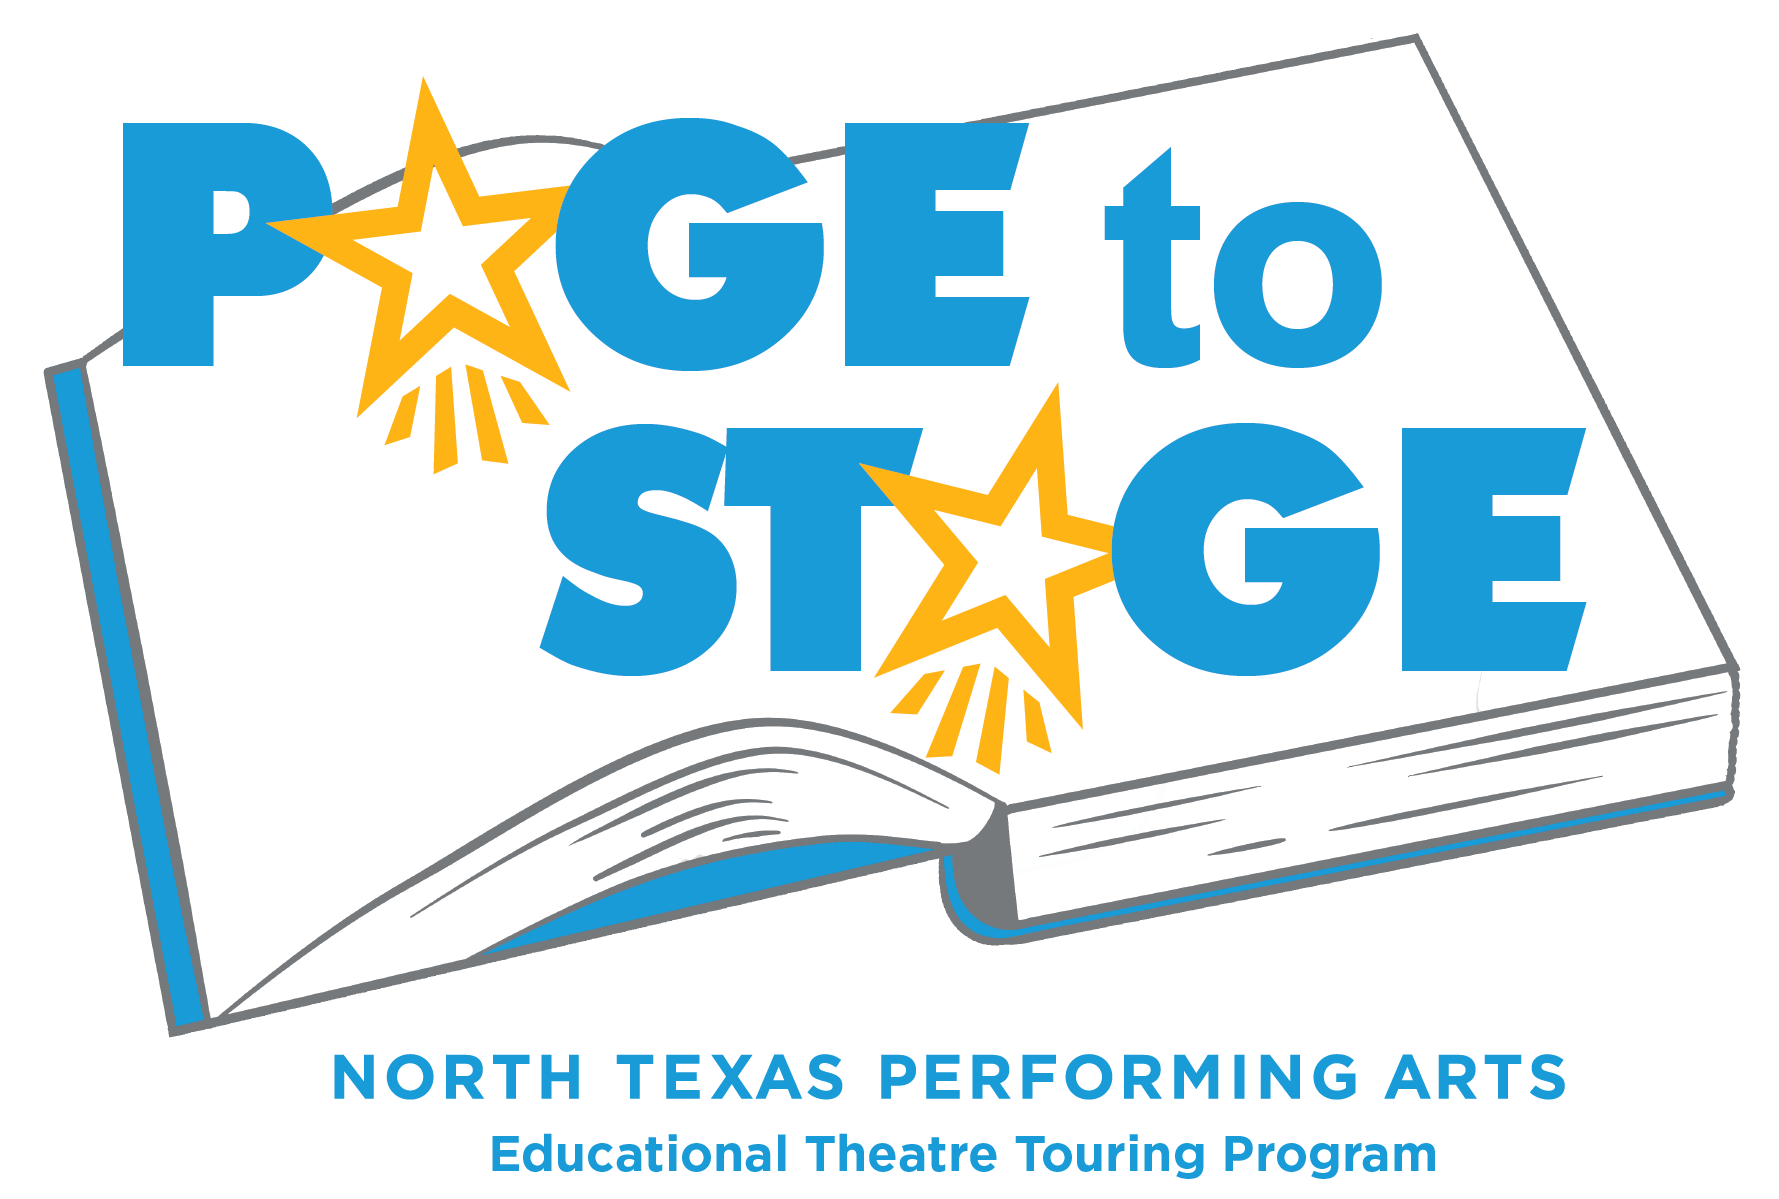 page to stage logo educational theatre touring program